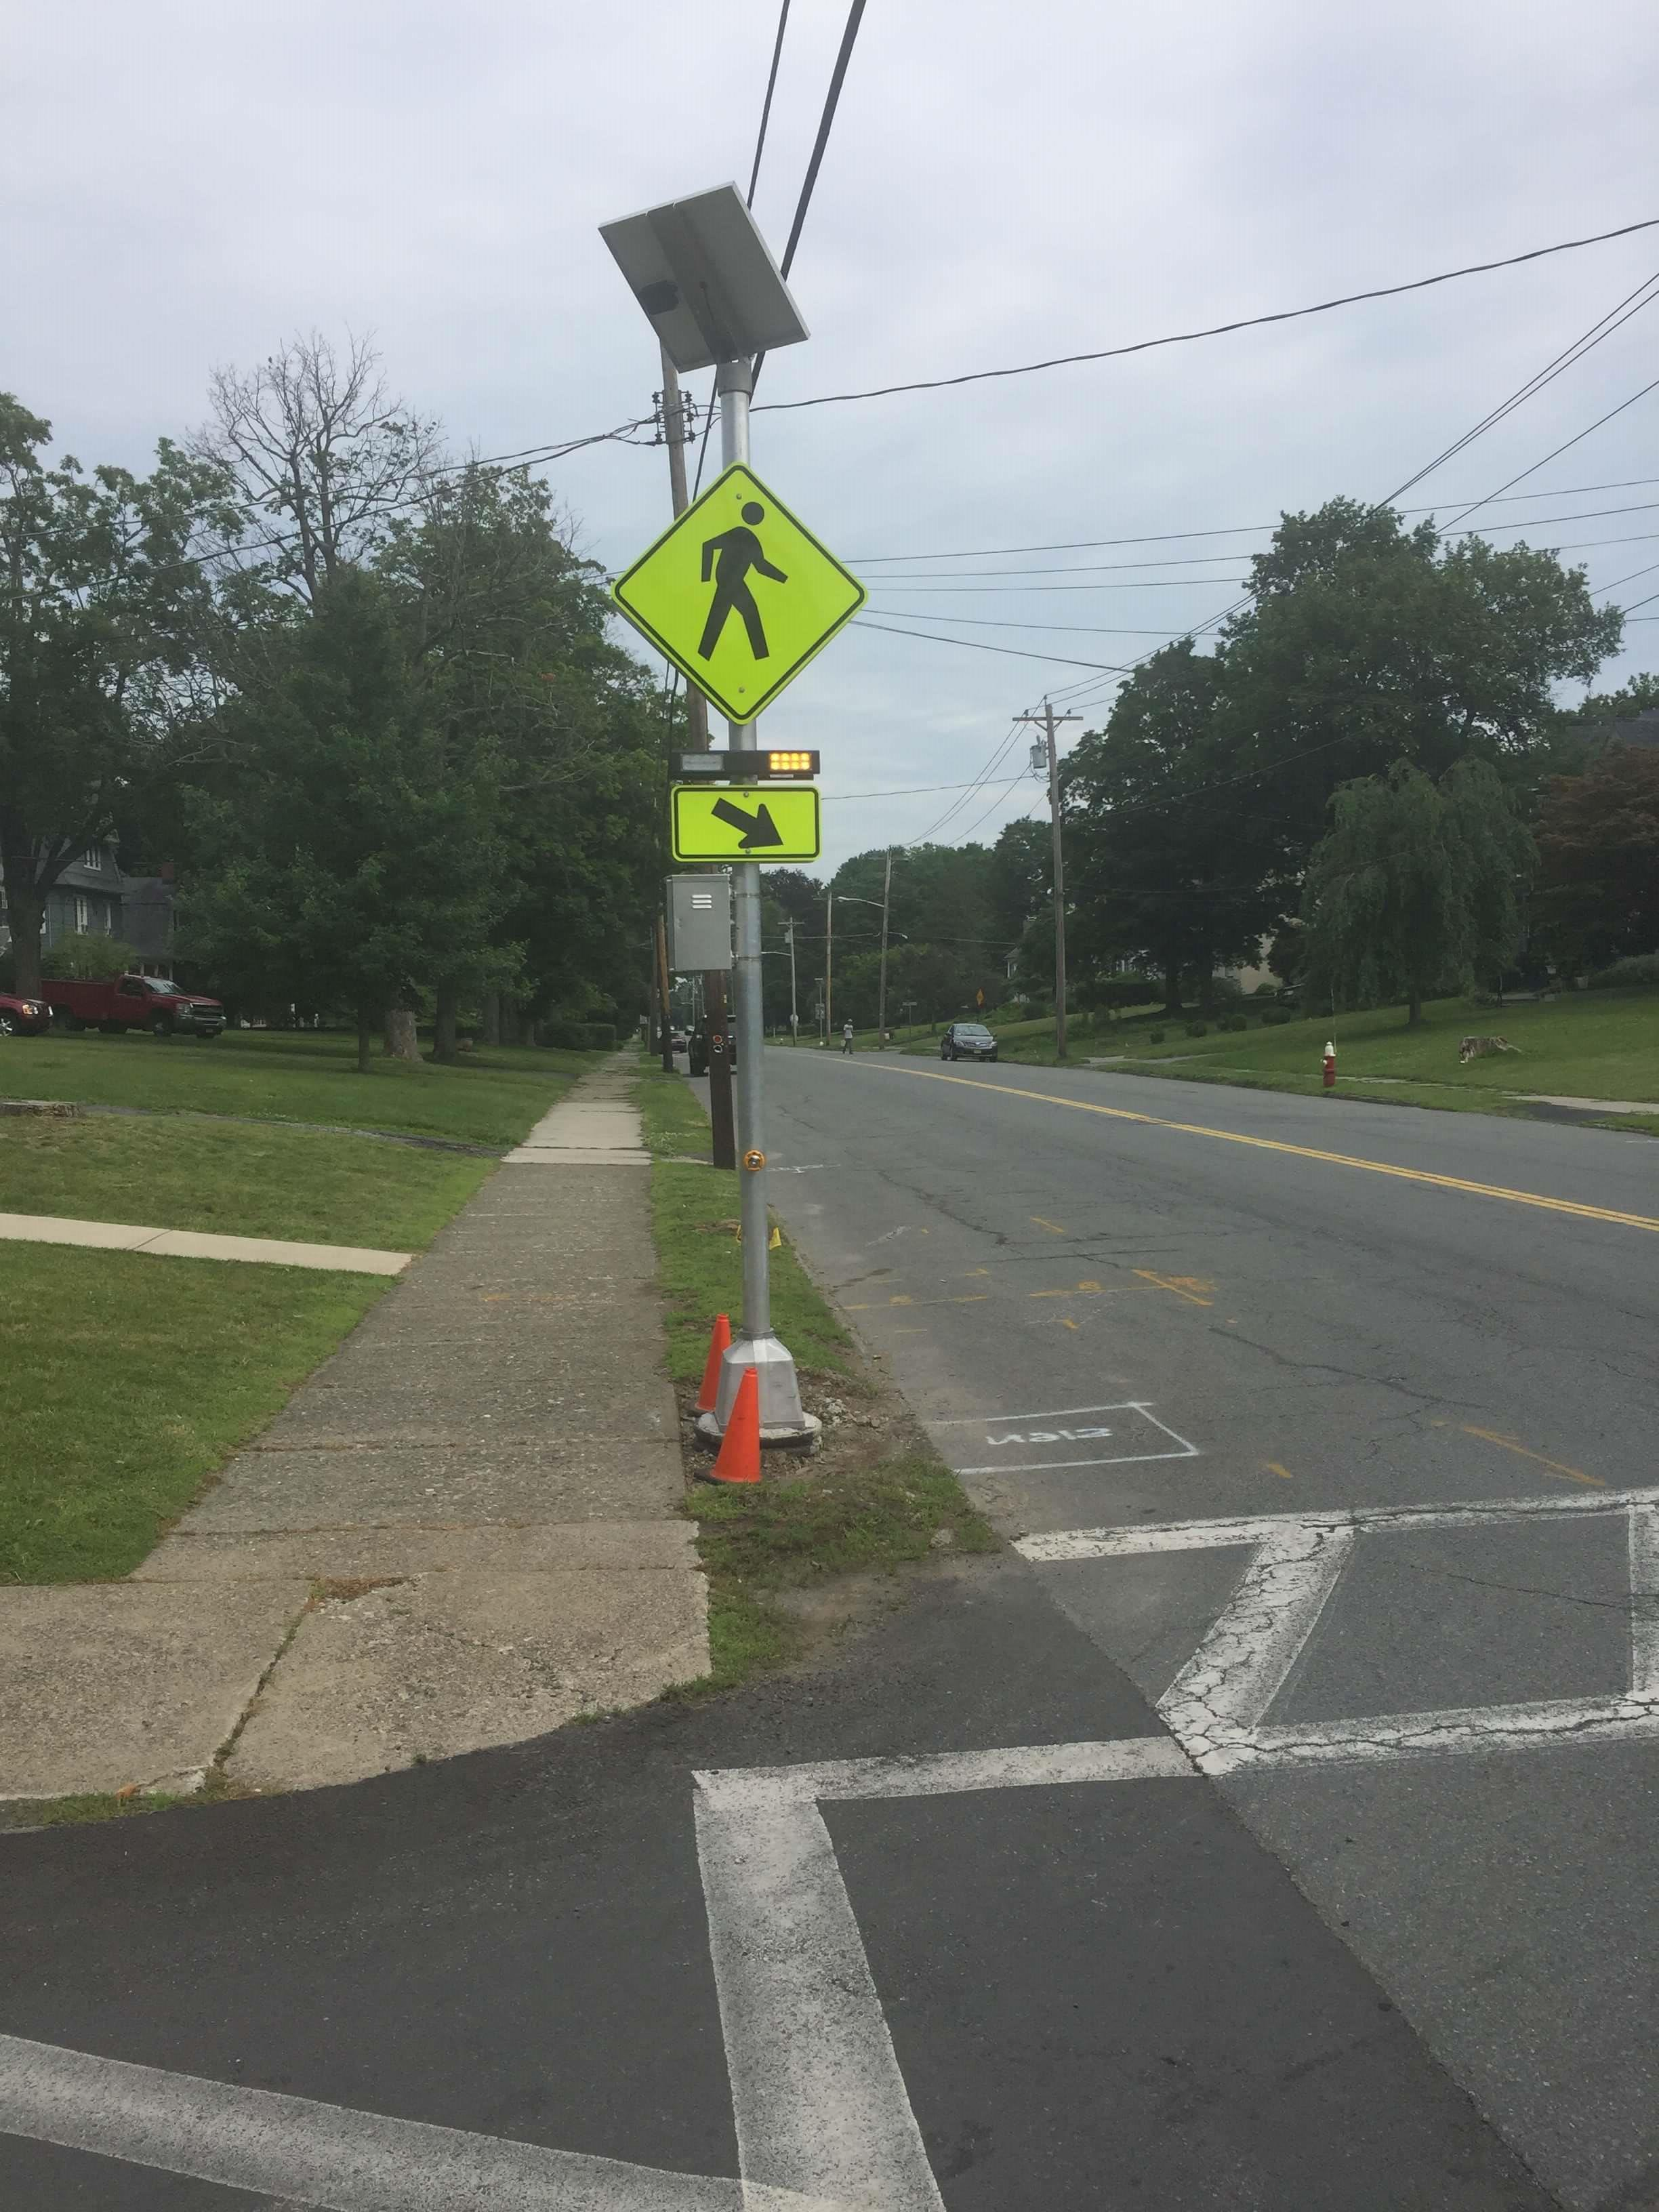 2ND TRAFFIC CALMING DEVICE FOR WEBSITE